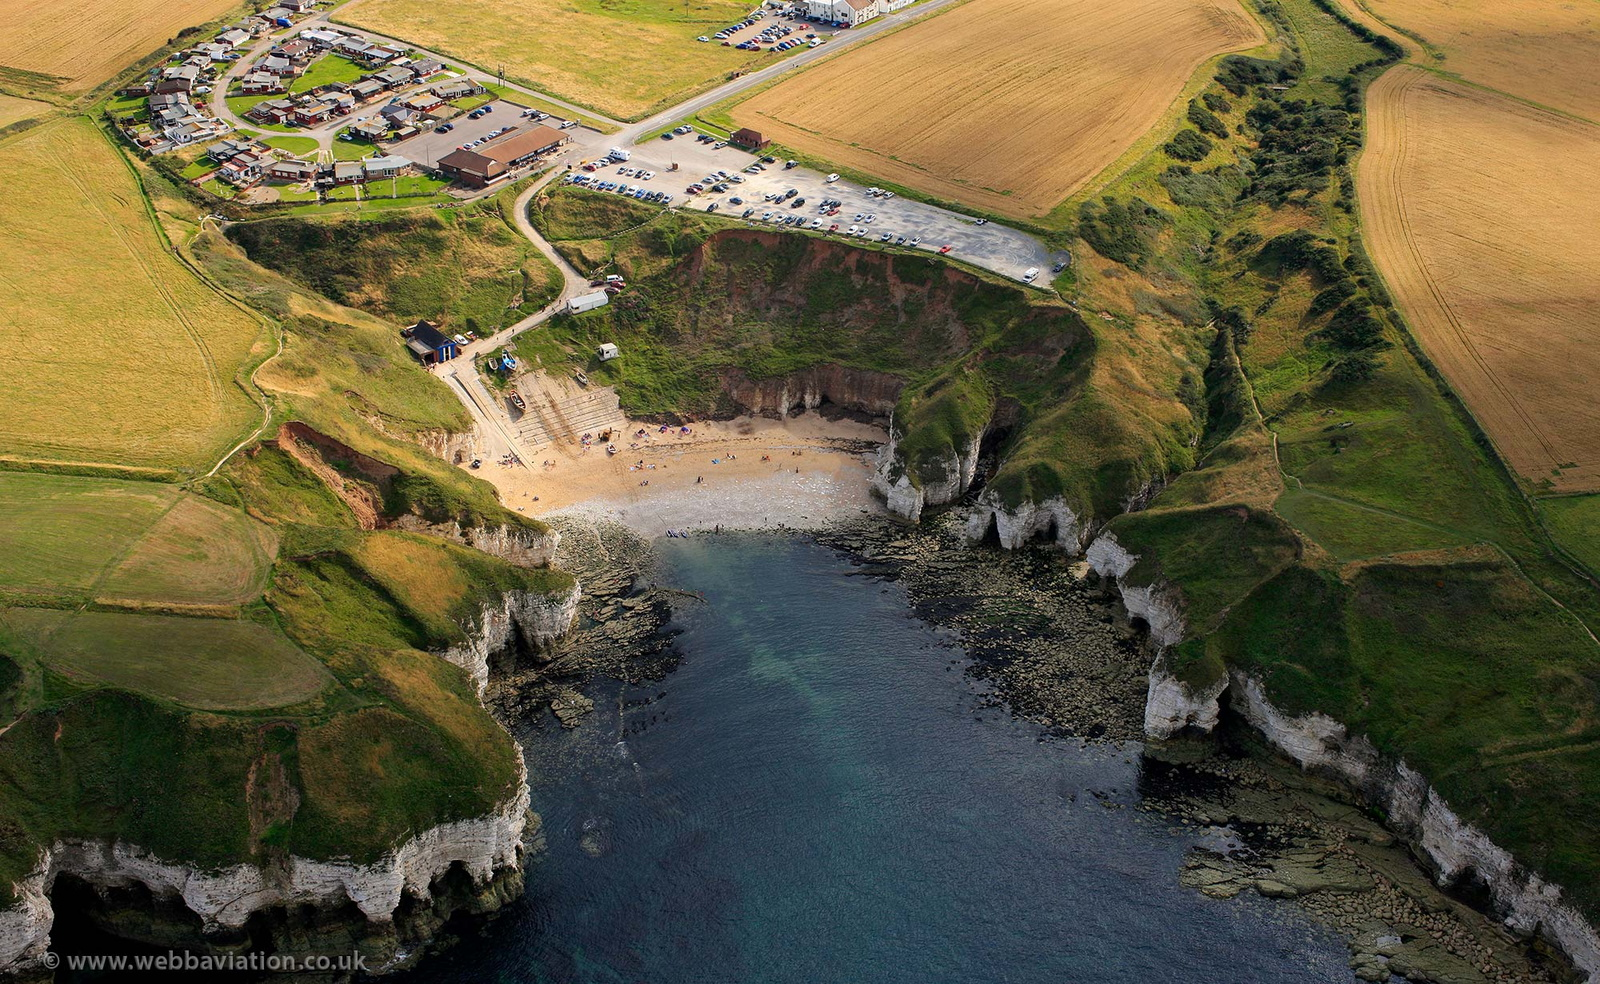 North Landing Flamborough from the air